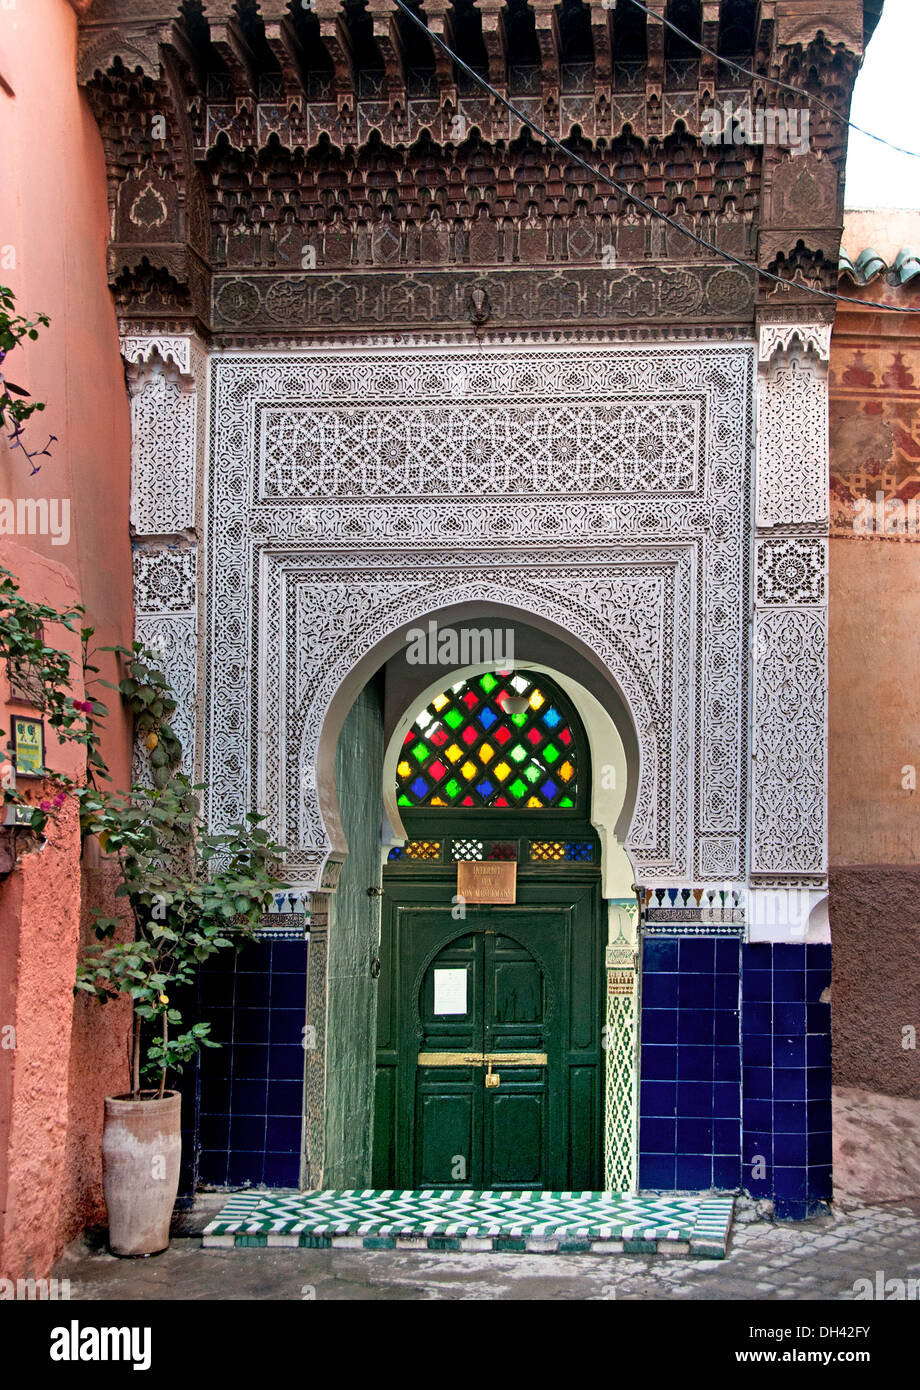 Interdit aux non Musulmans ( Prohibits non-Muslims ) Small Mosque in center of  the Medina of Marrakesh  Morocco - Stock Image